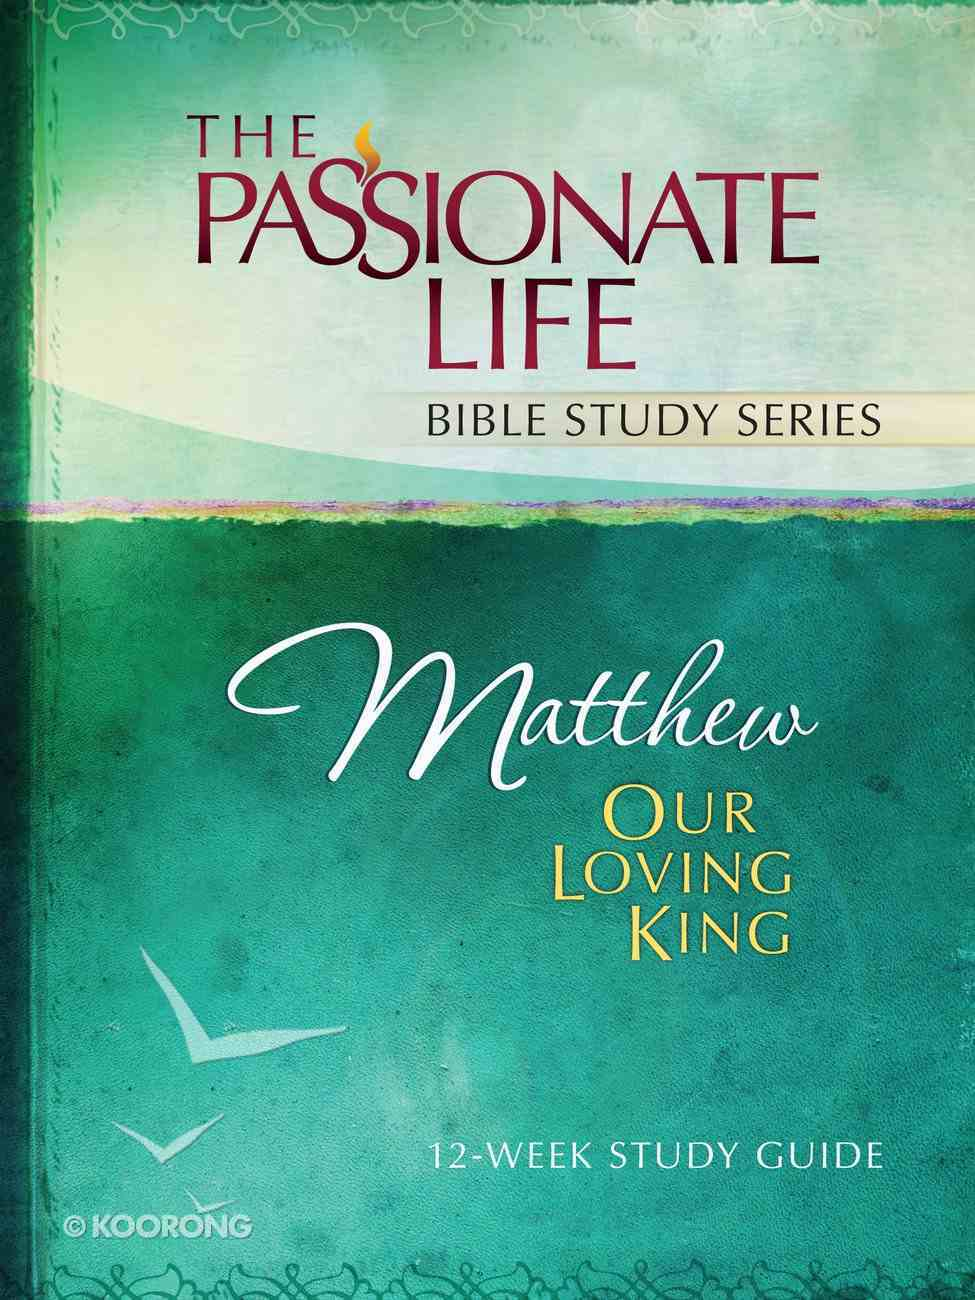 Matthew - Our Loving King (The Passionate Life Bible Study Series) eBook